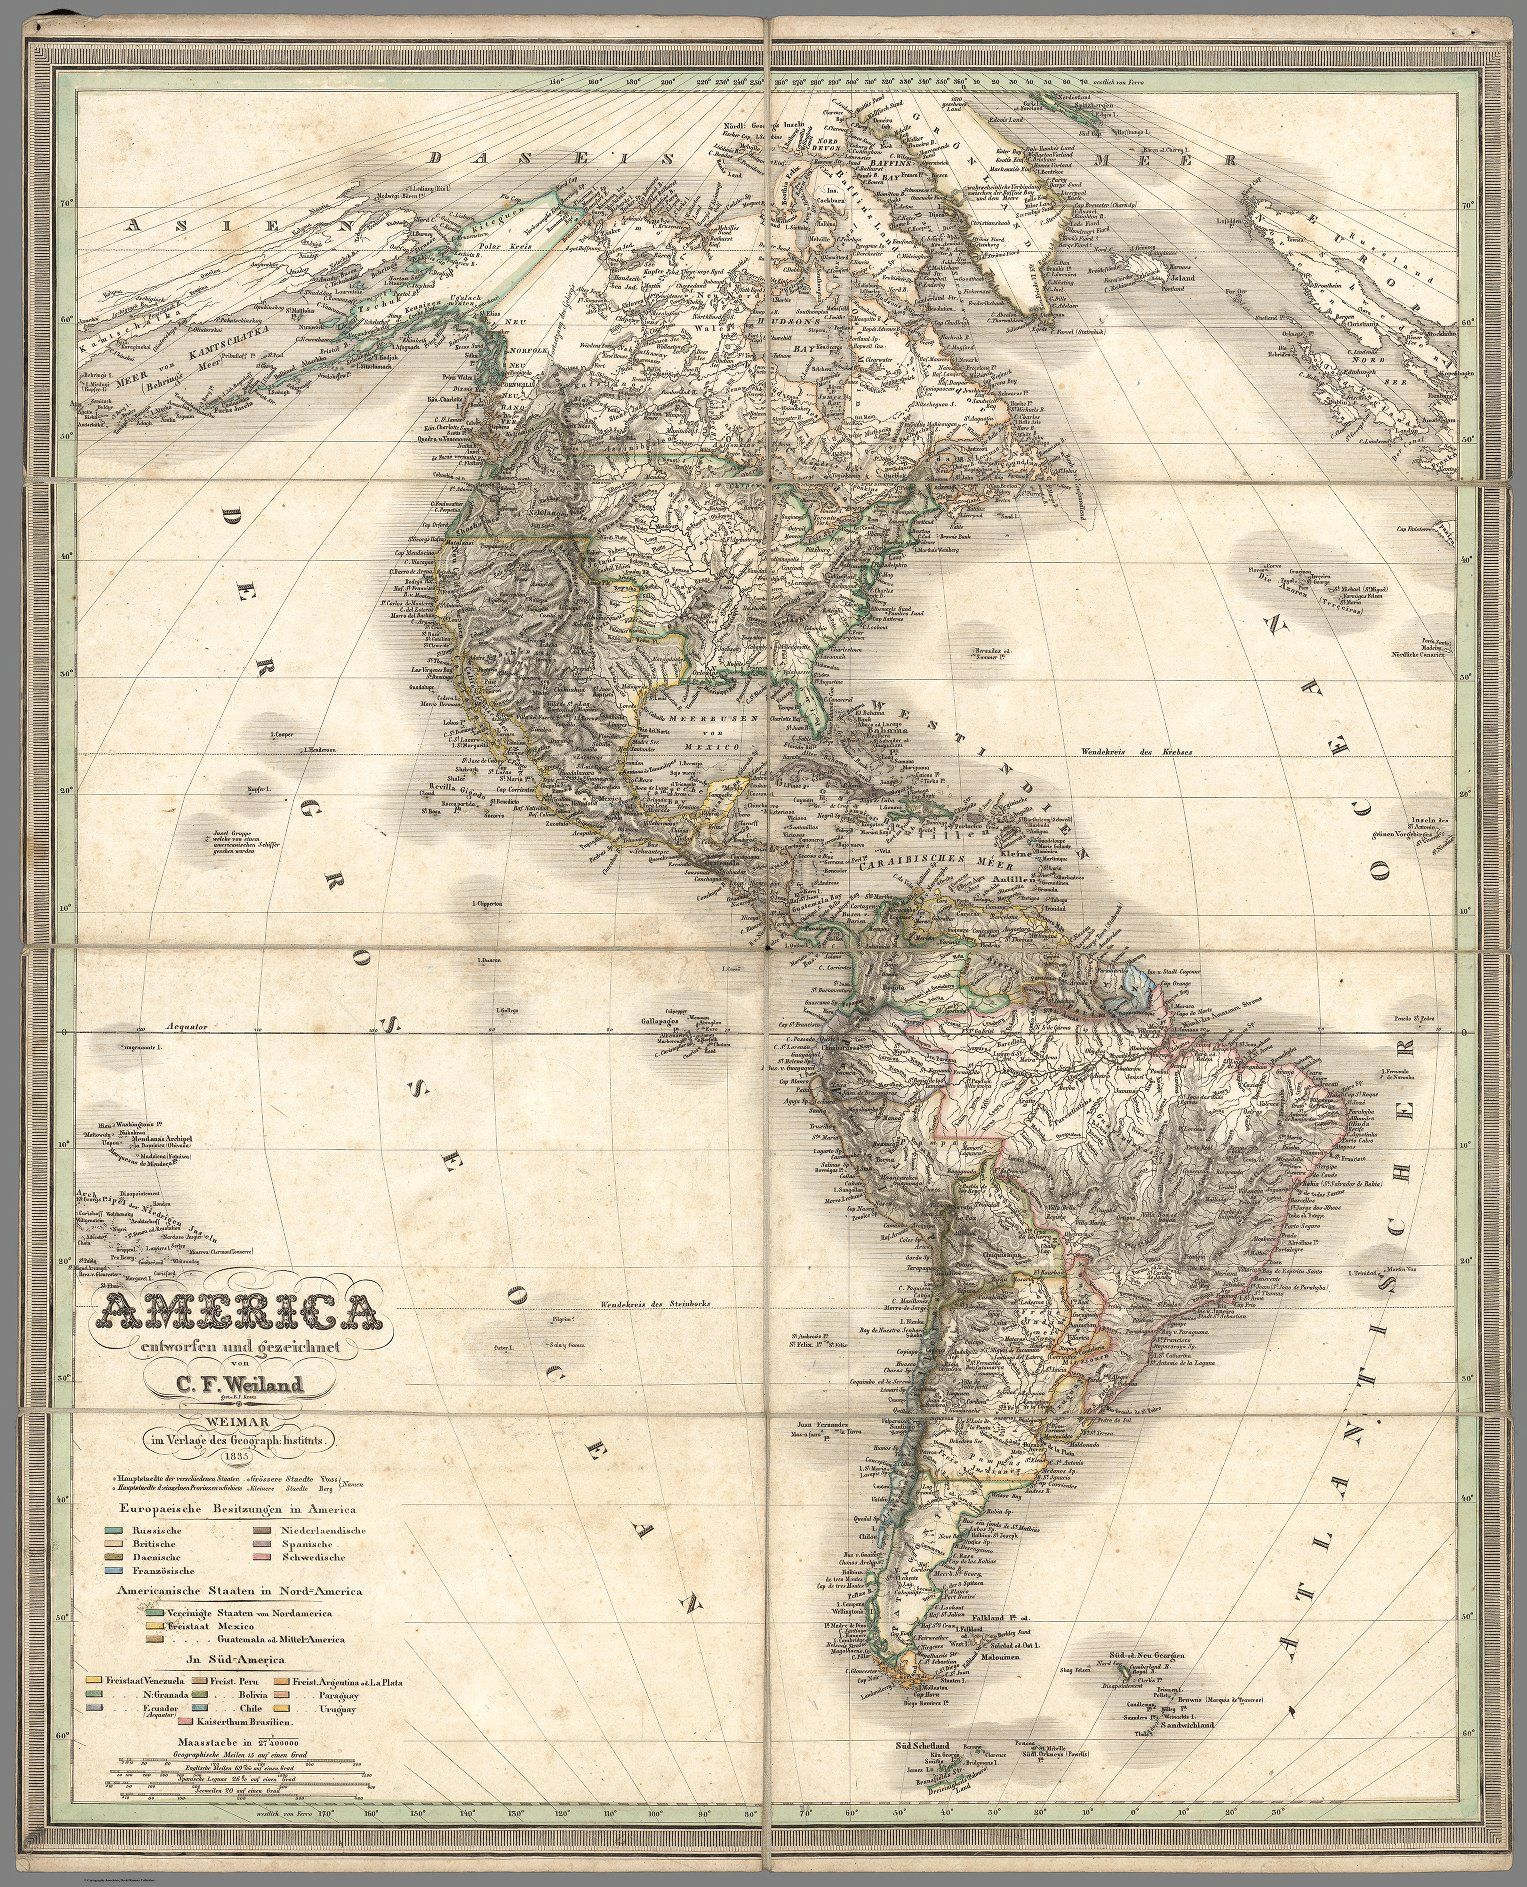 20 free vintage map printable images and ideas for displaying a